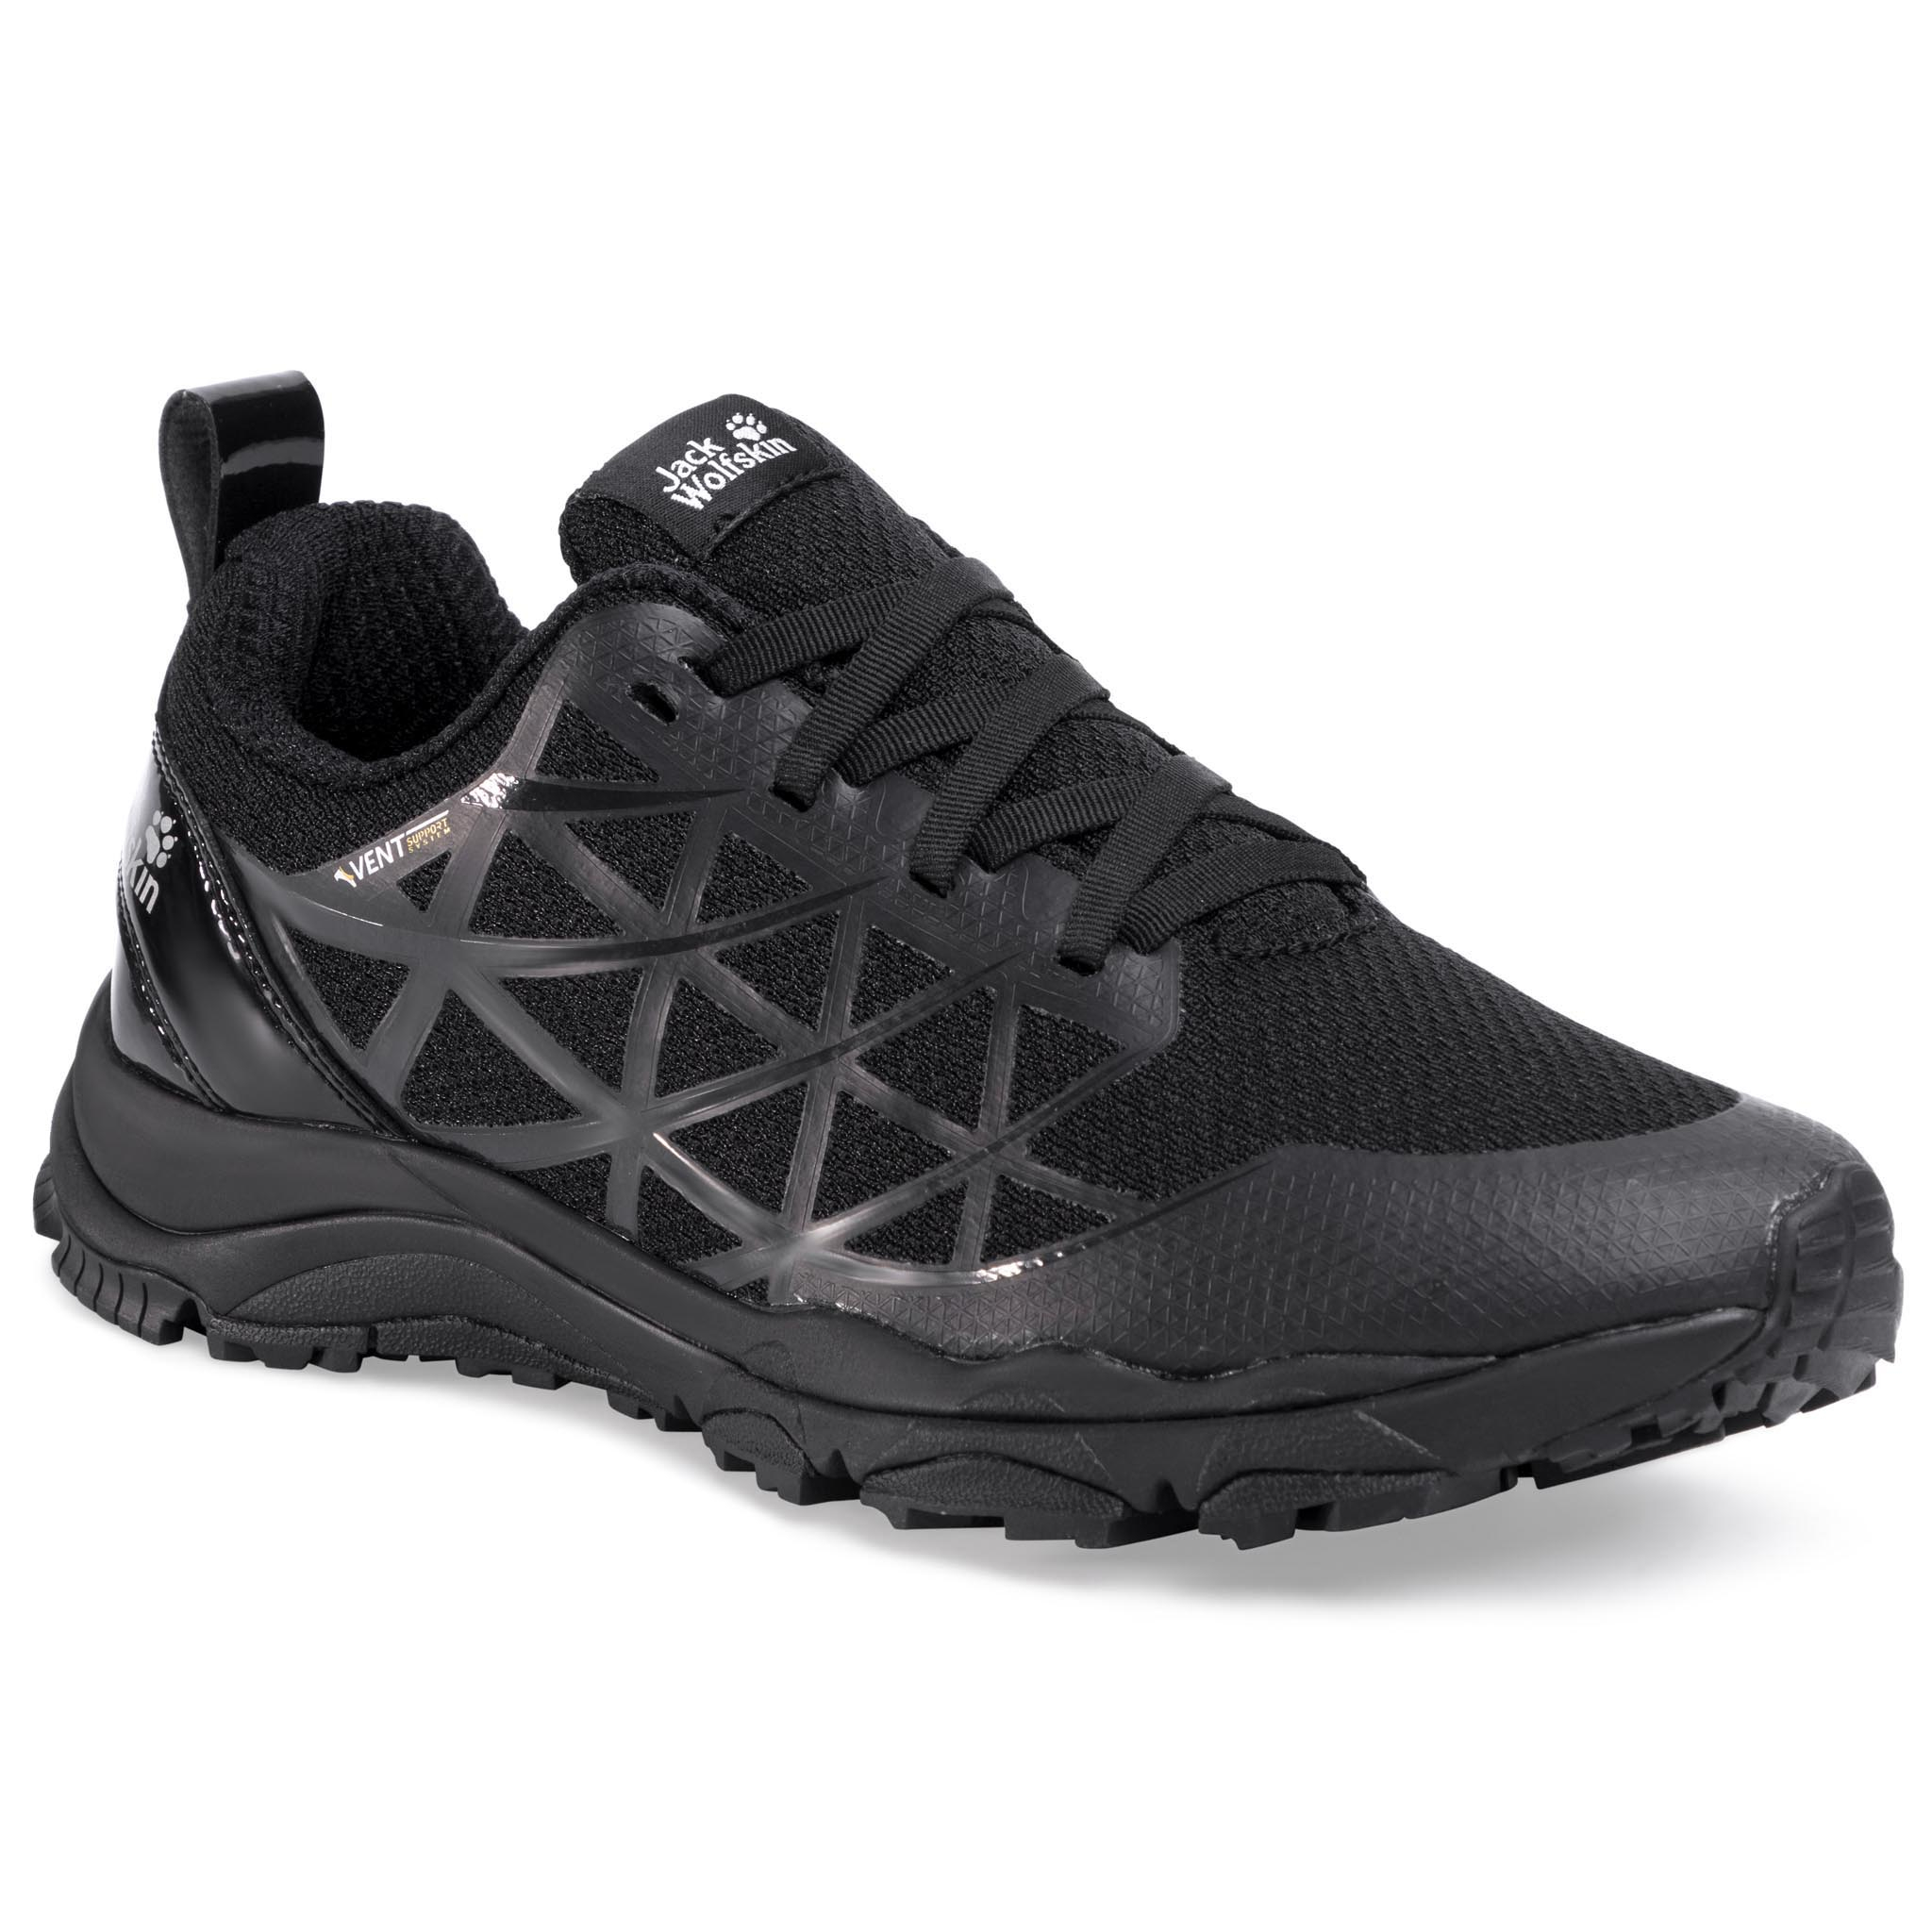 Trekkings Jack Wolfskin - Trail Blaze Vent Low W 4040931 Black imagine epantofi.ro 2021